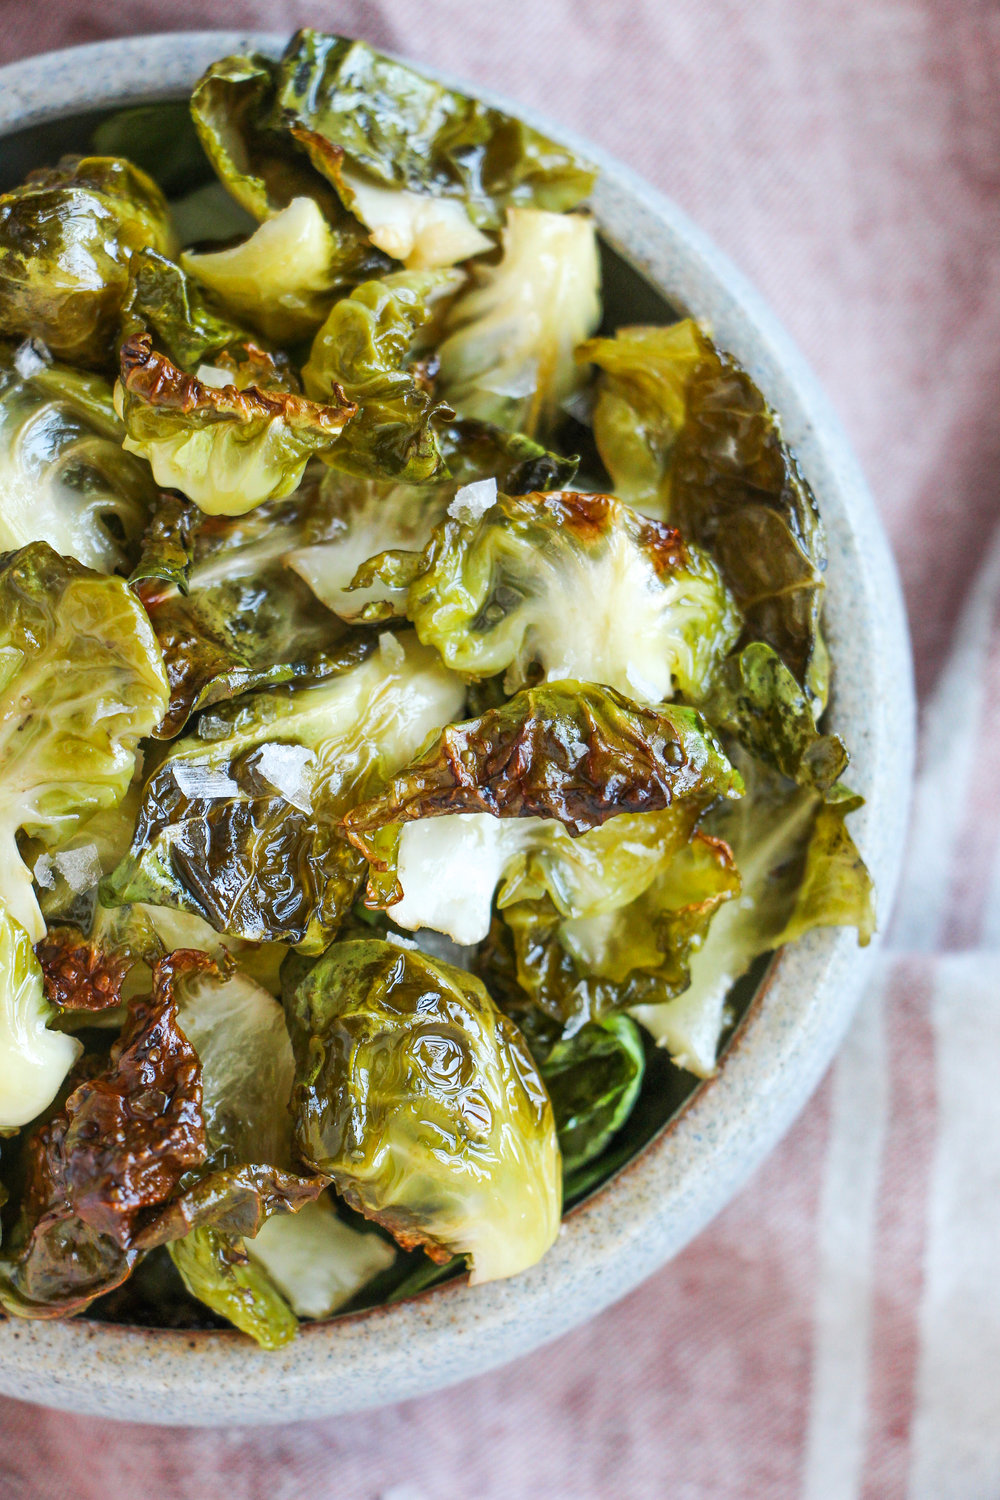 salt-and-vinegar-brussels-sprouts-chips-ShiraRD-paleo-refinedsugarfree-SnacksbyShira.jpg